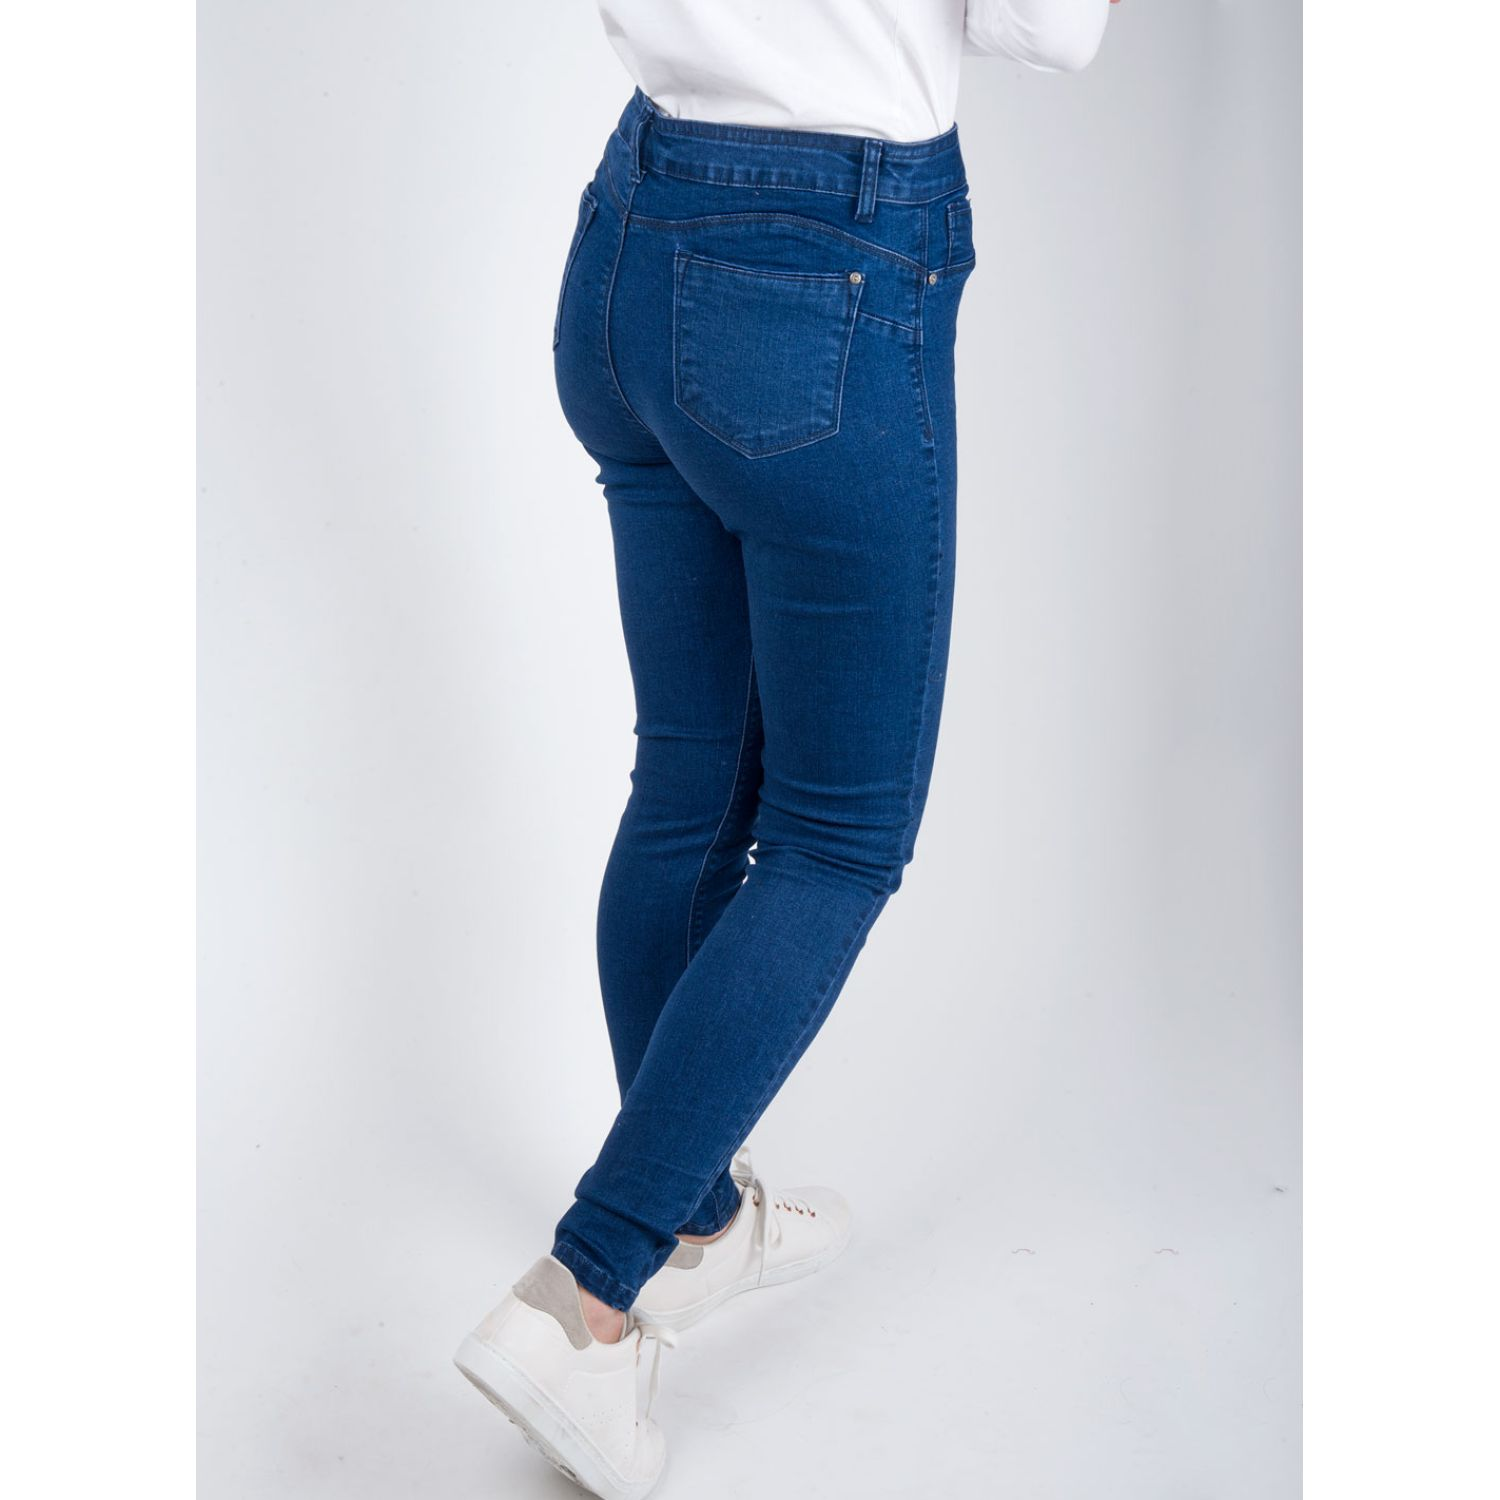 SISI JEGGINS PUSH UP Denim Leggings